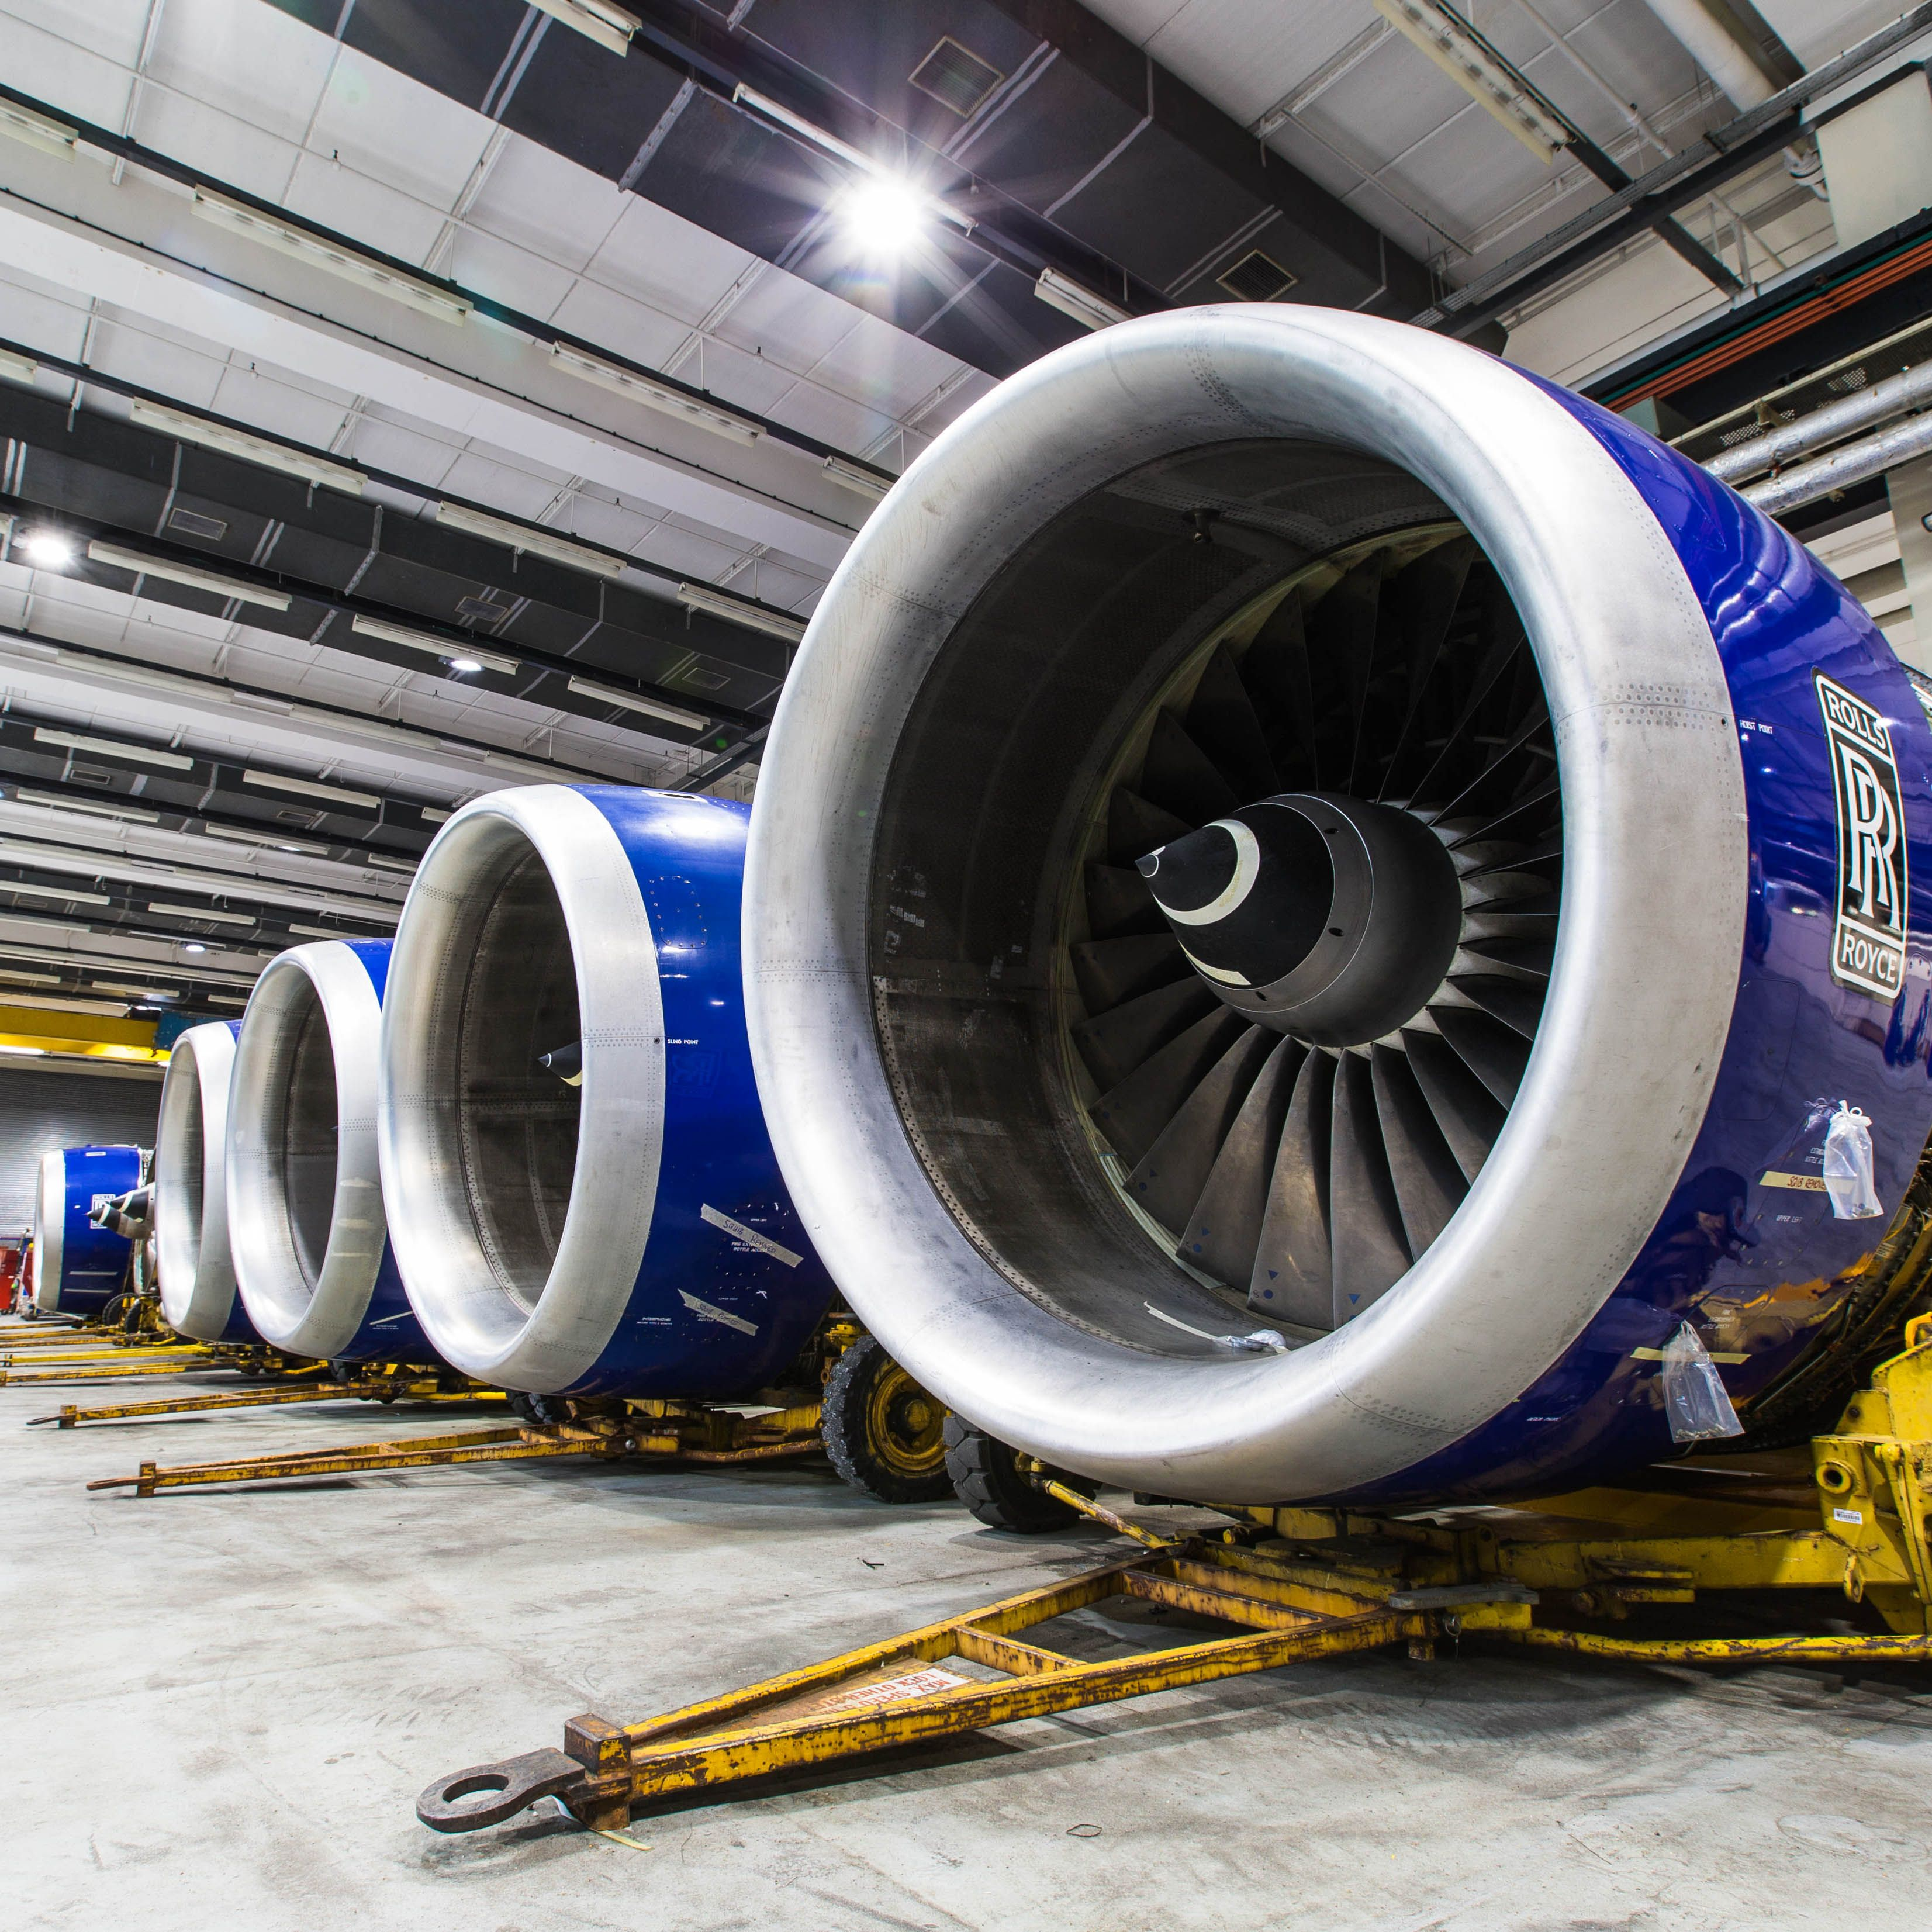 The Rolls Royce engine of our Boeing 747-400 | Aviation n